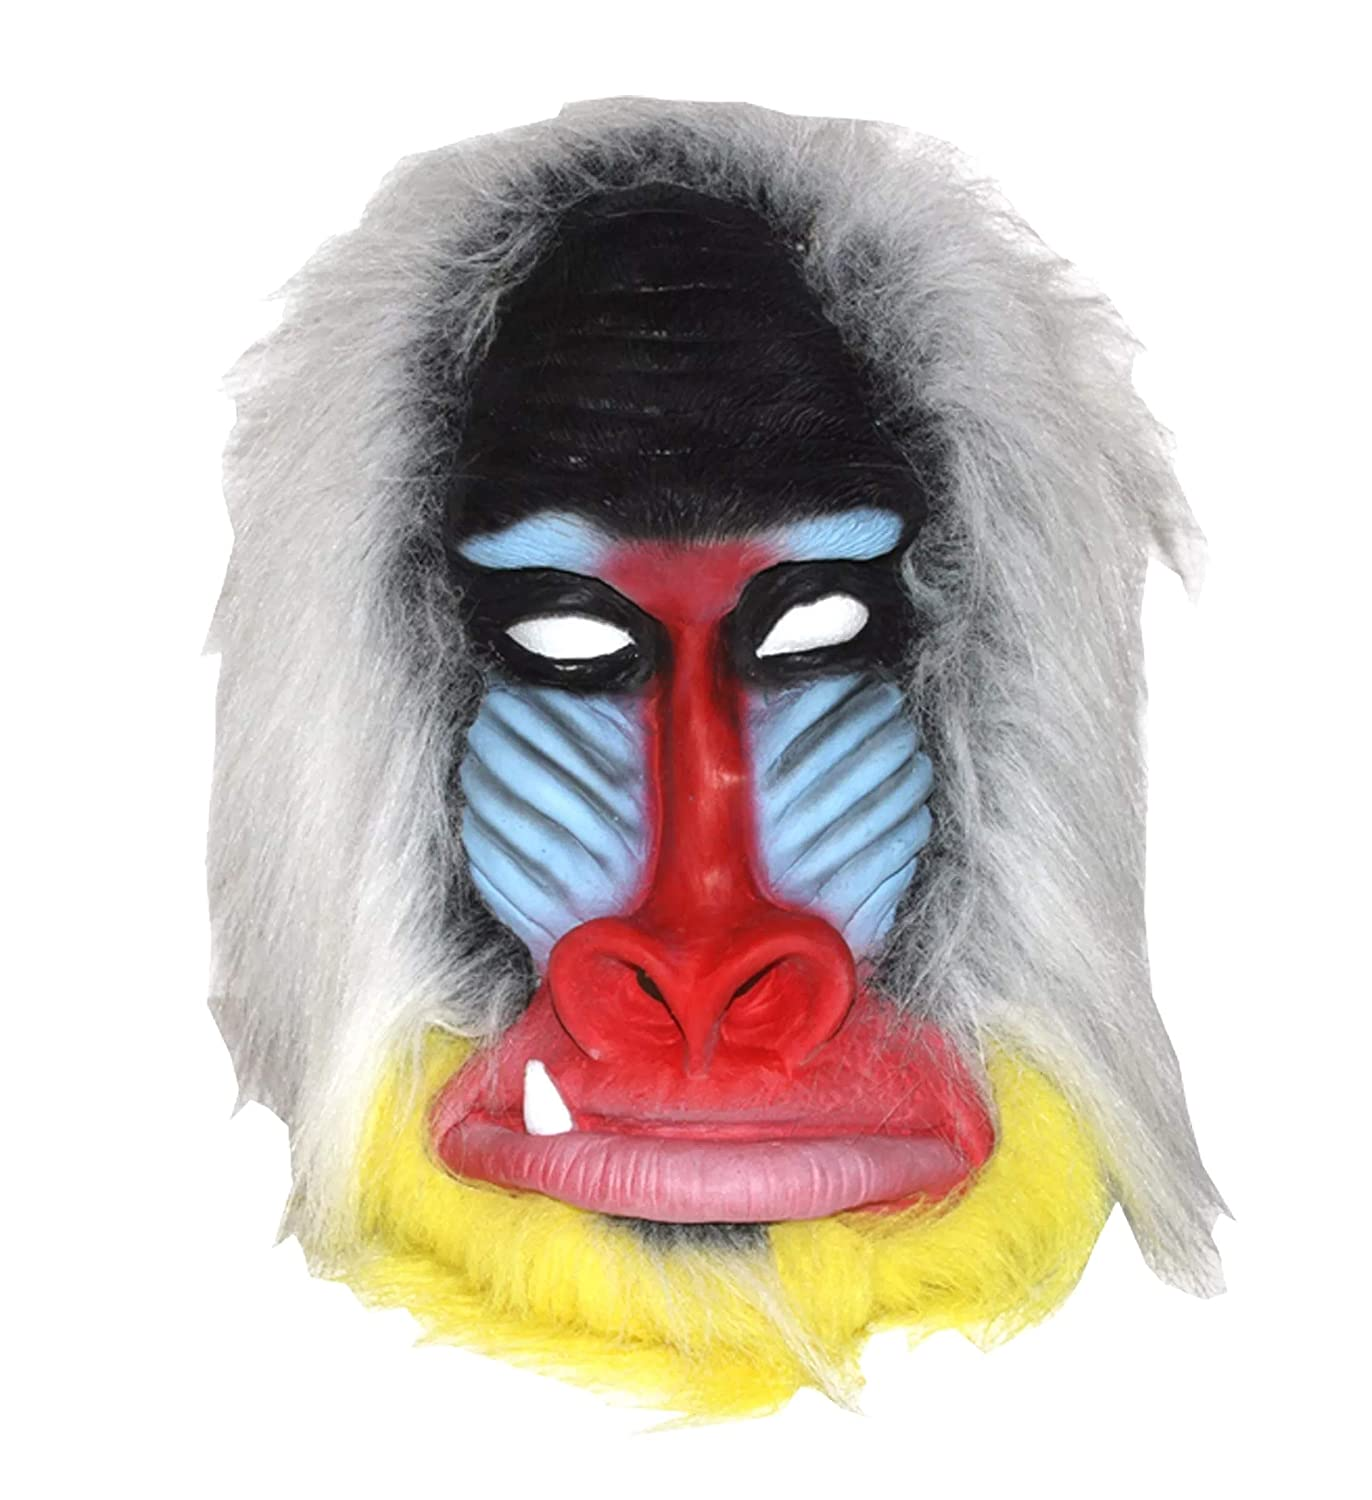 Halloween Costume Party Decorations /& Prop Mozlly Novelty Baboon Mask Latex